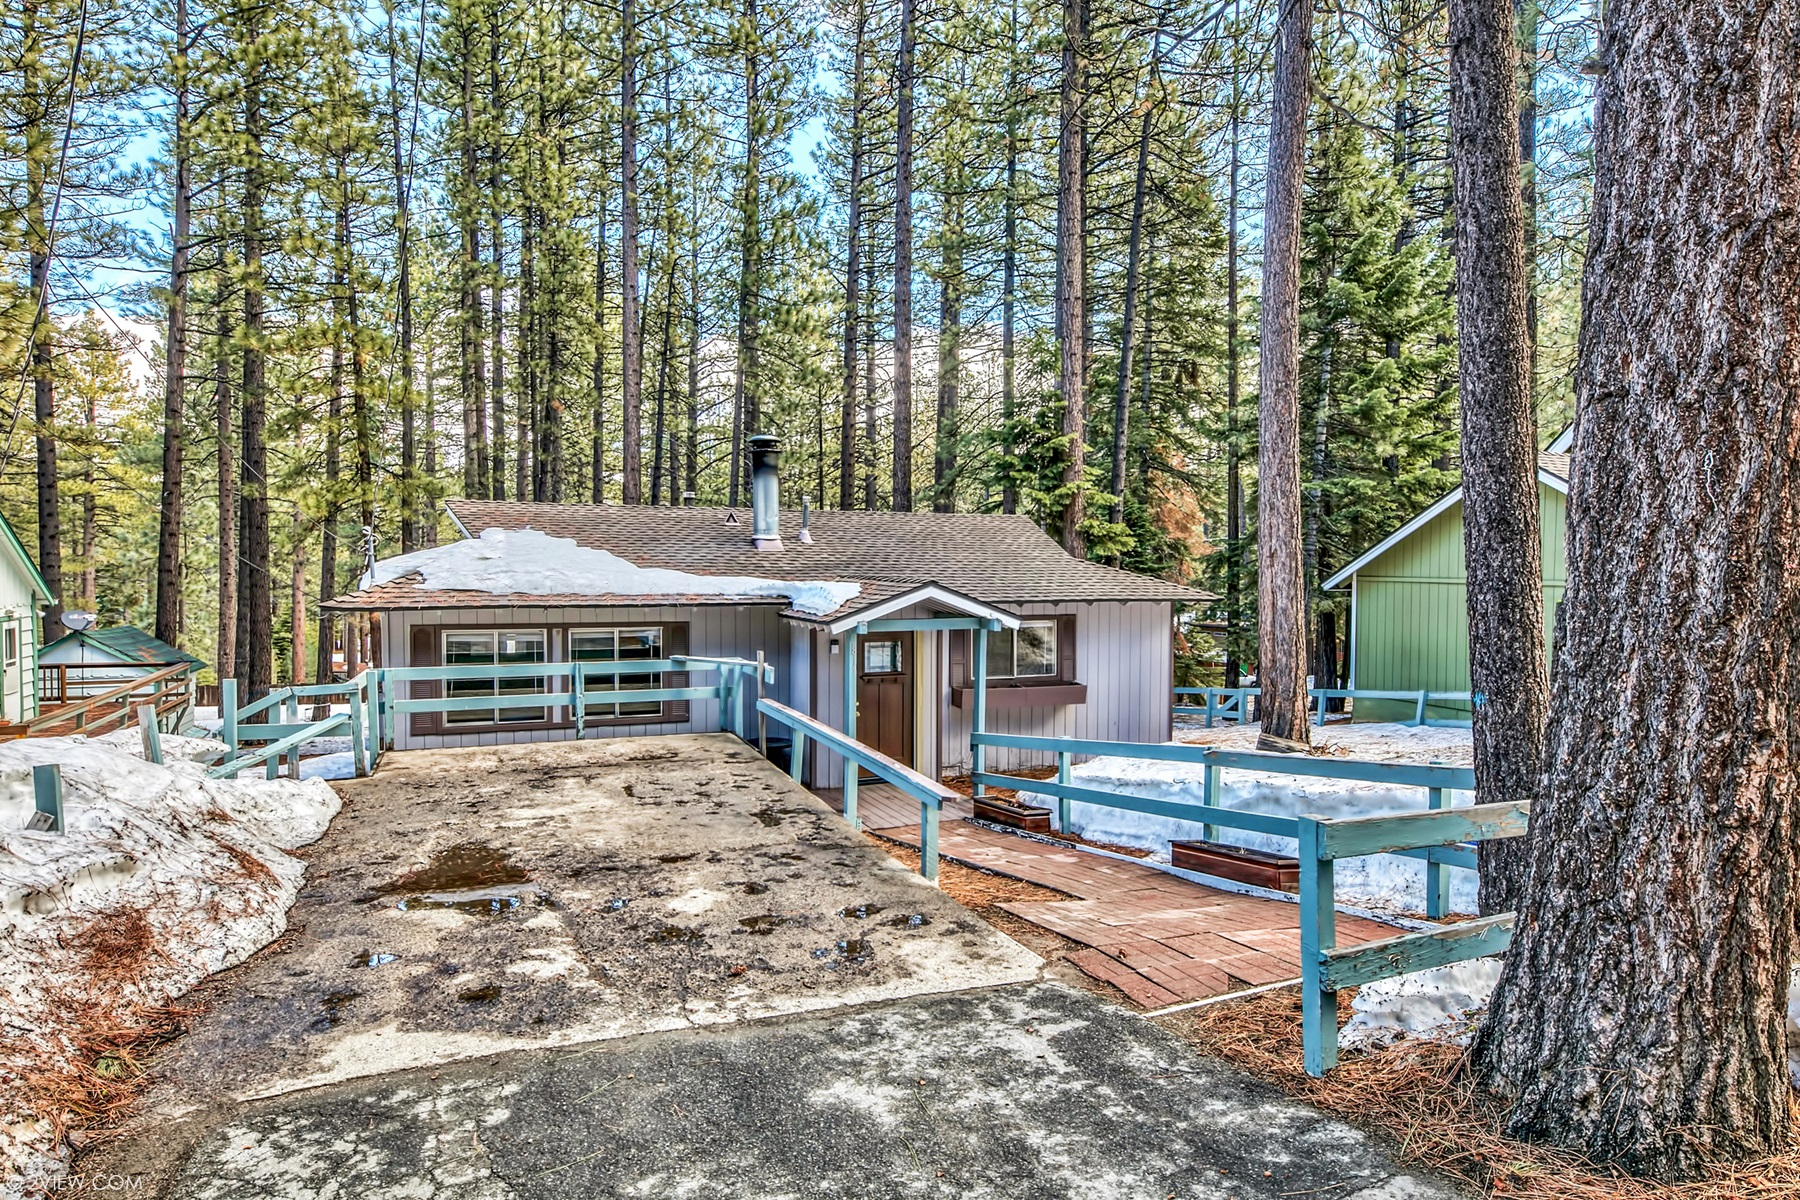 Single Family Home for Active at 817 Tata Lane, South Lake Tahoe, CA 96150 817 Tata Lane South Lake Tahoe, California 96150 United States